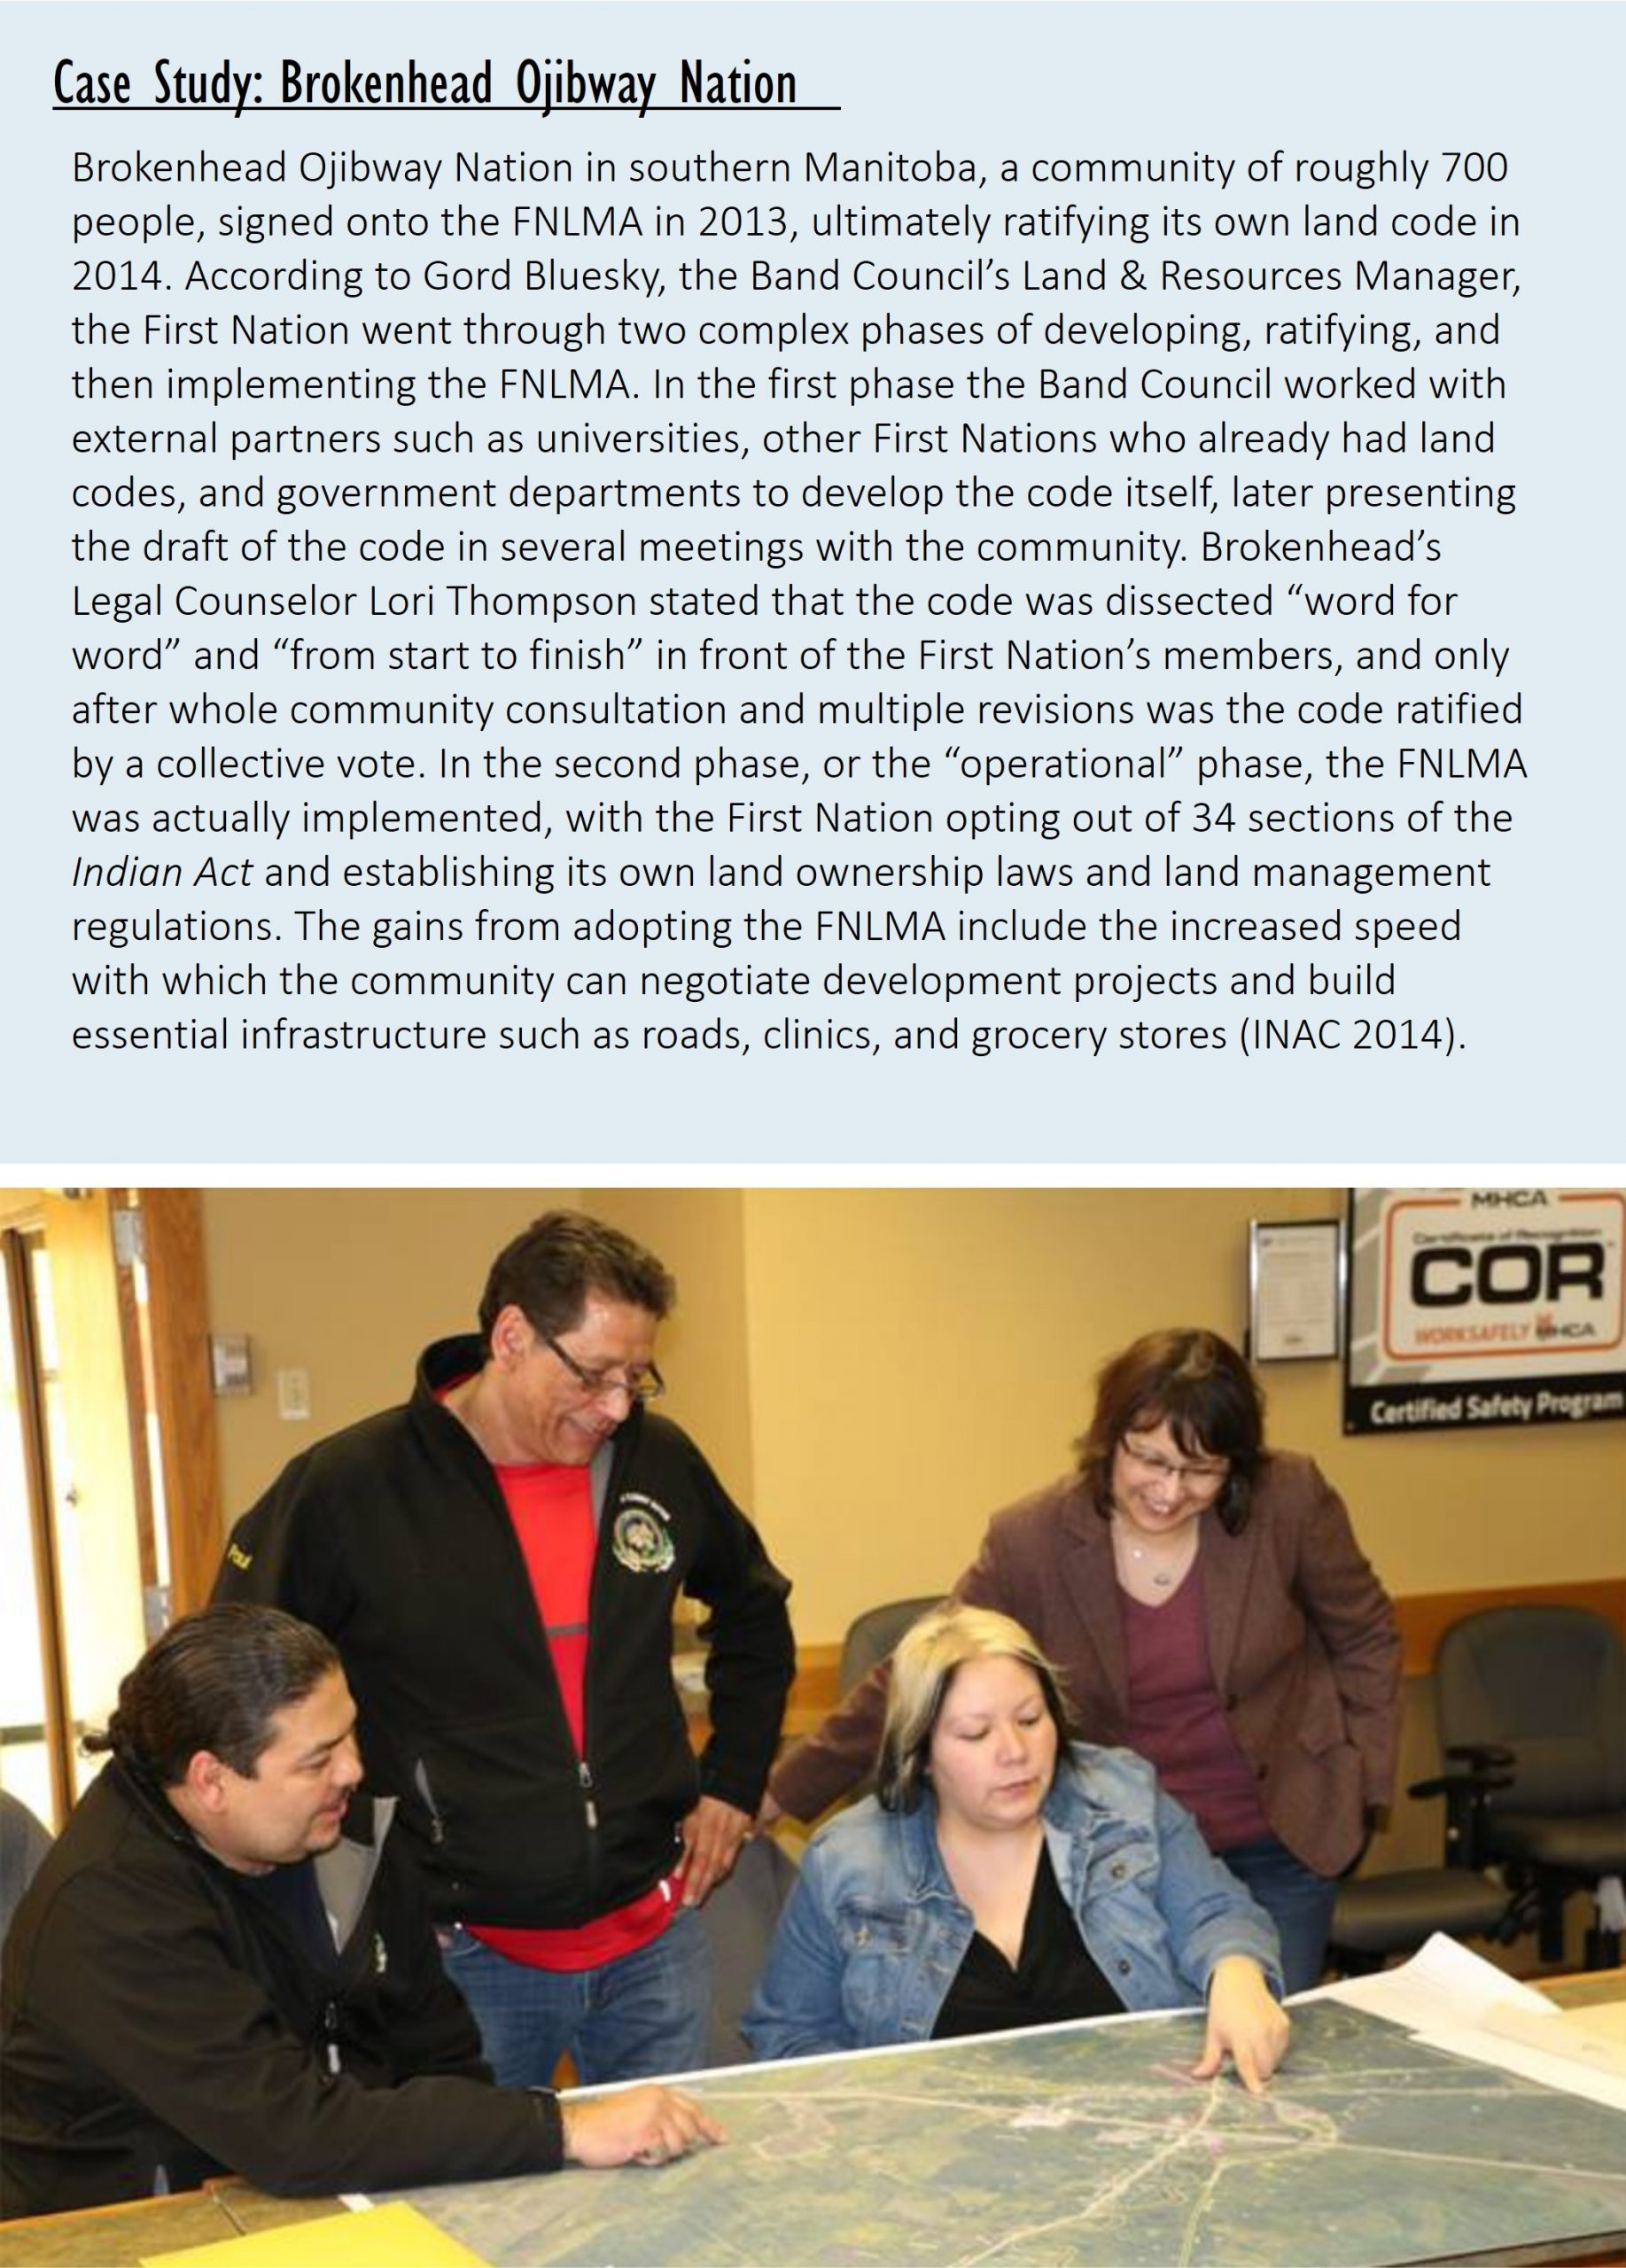 """Case Study: Brokenhead Ojibway Nation Brokenhead Ojibway Nation in southern Manitoba, a community of roughly 700 people, signed onto the FNLMA in 2013, ultimately ratifying its own land code in 2014.According to Gord Bluesky, the Band Council's Land & Resources Manager, the First Nation went through two complex phases of developing, ratifying, and then implementing the FNLMA. In the first phase the Band Council worked with external partners such as universities, other First Nations who already had land codes, and government departments to develop the code itself, later presenting the draft of the code in several meetings with the community.Brokenhead's Legal Counselor Lori Thompson stated that the code was dissected """"word for word"""" and """"from start to finish"""" in front of the First Nation's members, and only after whole community consultation and multiple revisions was the code ratified by a collective vote. In the second phase, or the """"operational"""" phase, the FNLMA was actually implemented, with the First Nation opting out of 34 sections of the Indian Act and establishing its own land ownership laws and land management regulations. The gains from adopting the FNLMA include the increased speed with which the community can negotiate development projects and build essential infrastructure such as roads, clinics, and grocery stores (INAC 2014)."""